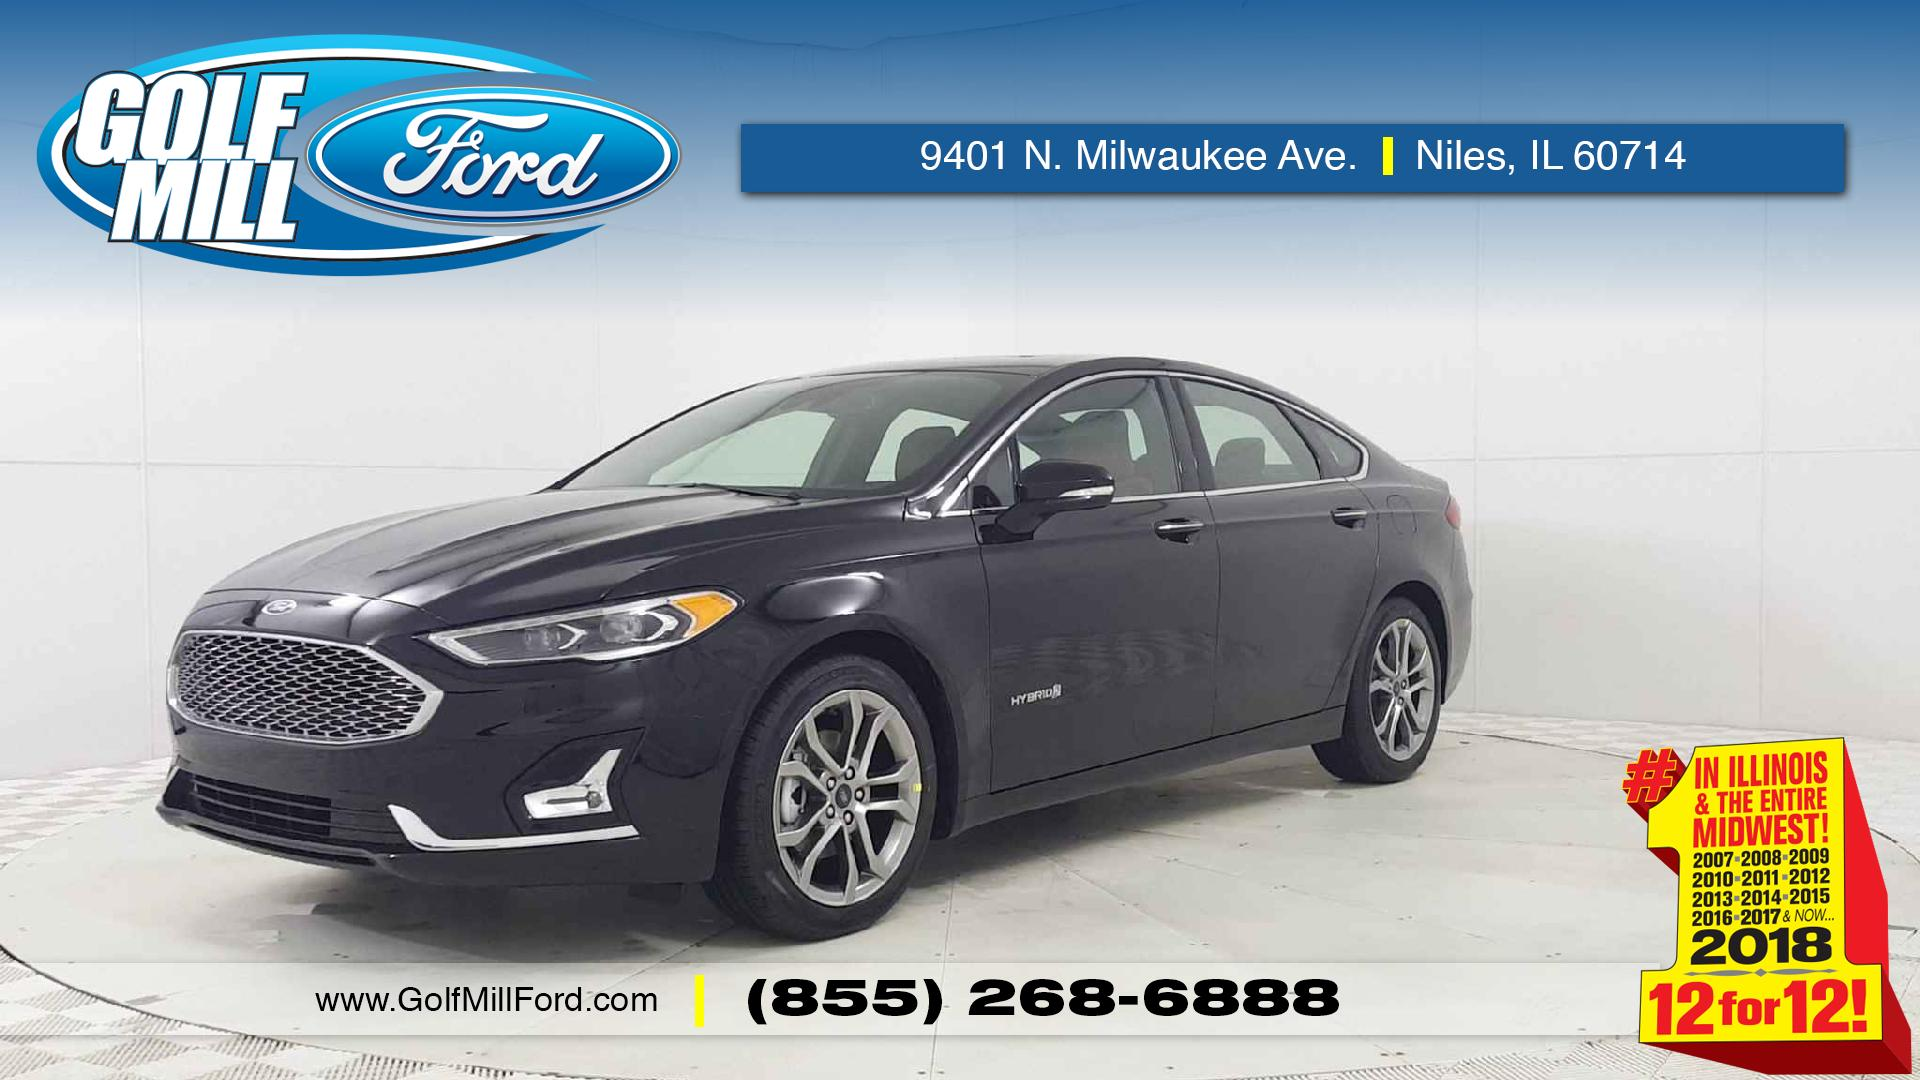 New Fusion Hybrid For Sale In Niles Il Golf Mill Ford